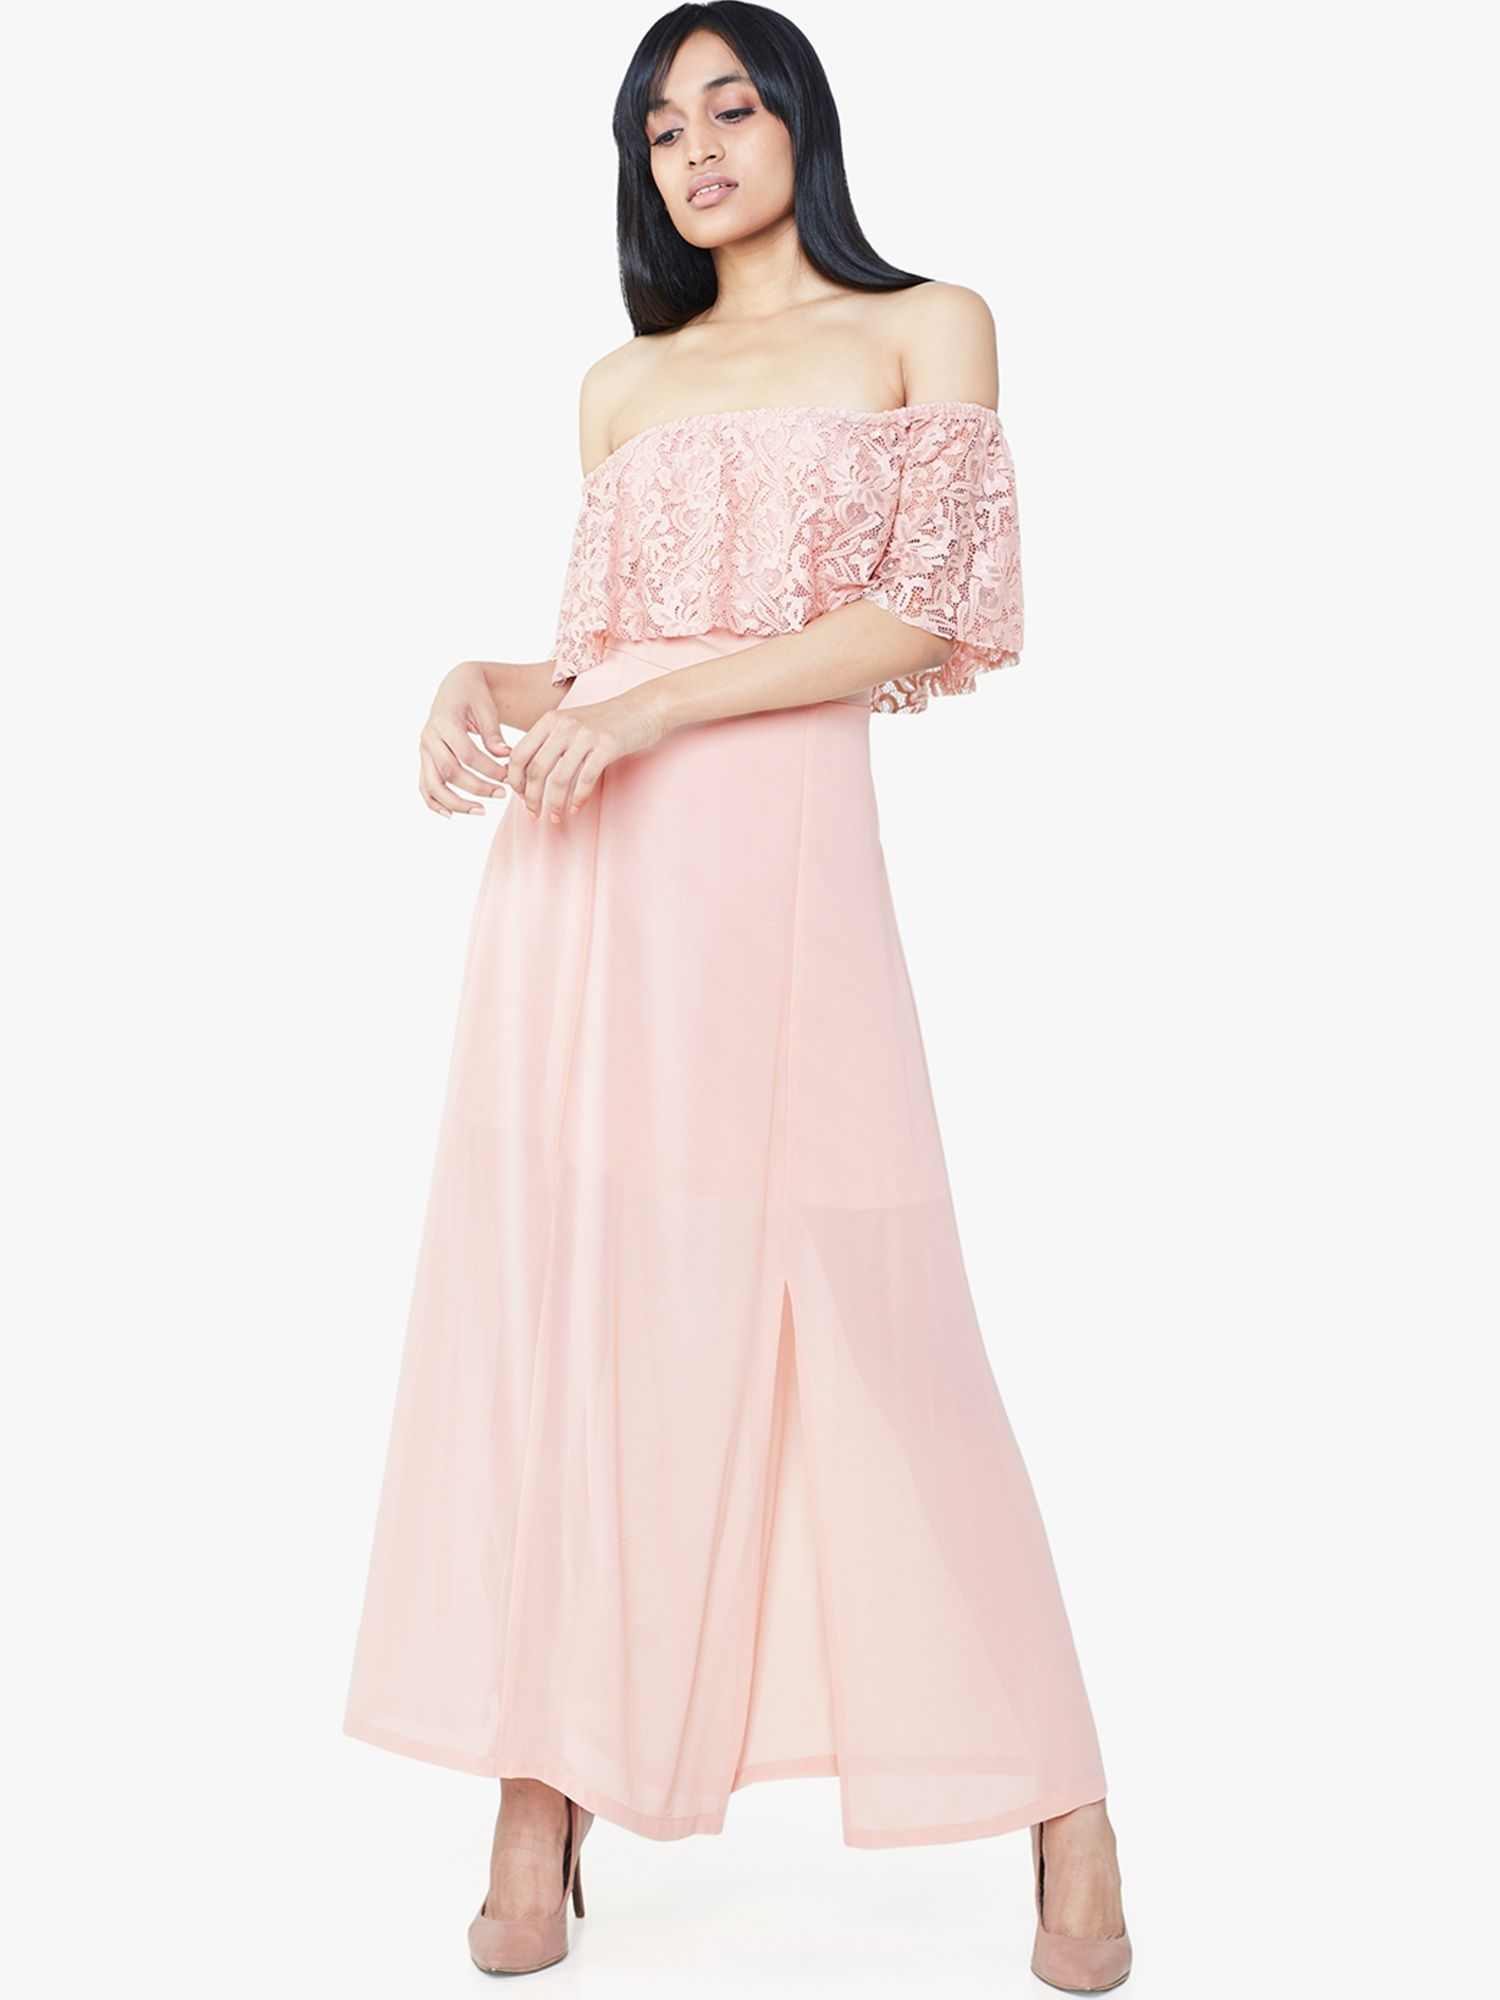 b6073a60d93 AND Gowns   Buy AND Pink Lace Off-Shoulder Maxi Dress Online